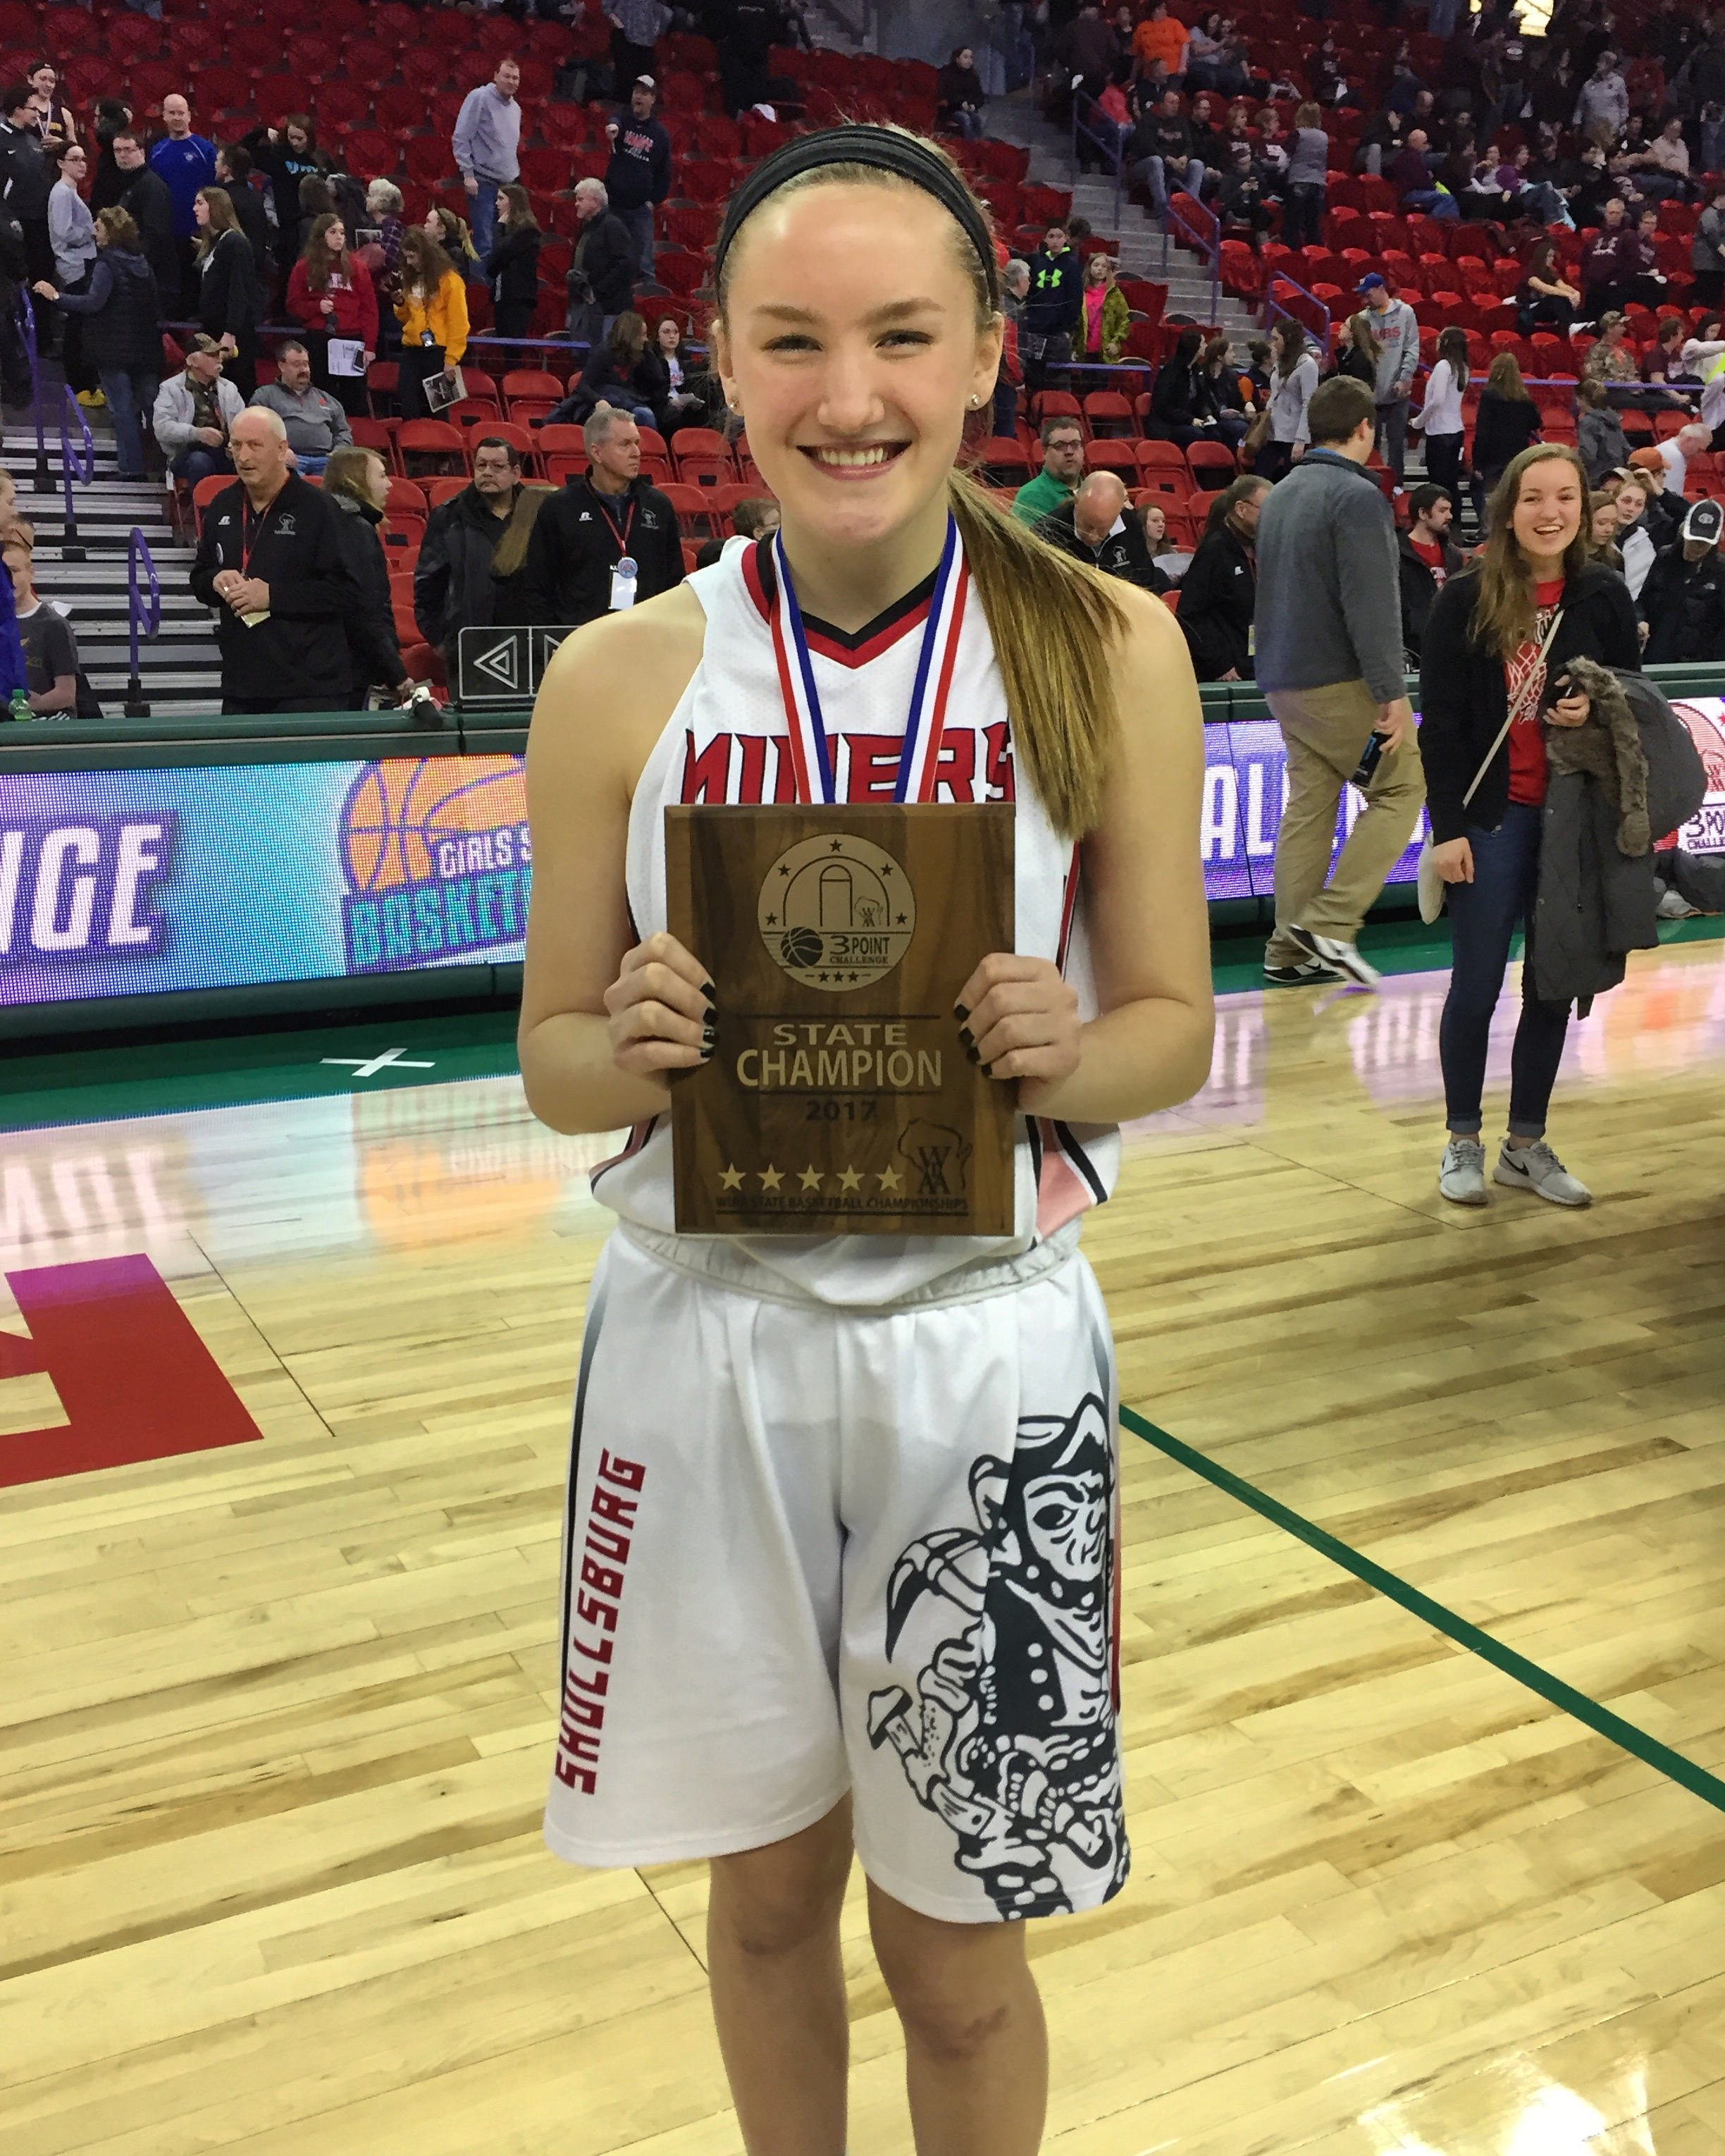 2f578f70 Hattie Rennert, a senior from Shullsburg, won the 2017 girls 3-Point  Challenge held Saturday morning at the Resch Center in conjunction with the  State Girls ...